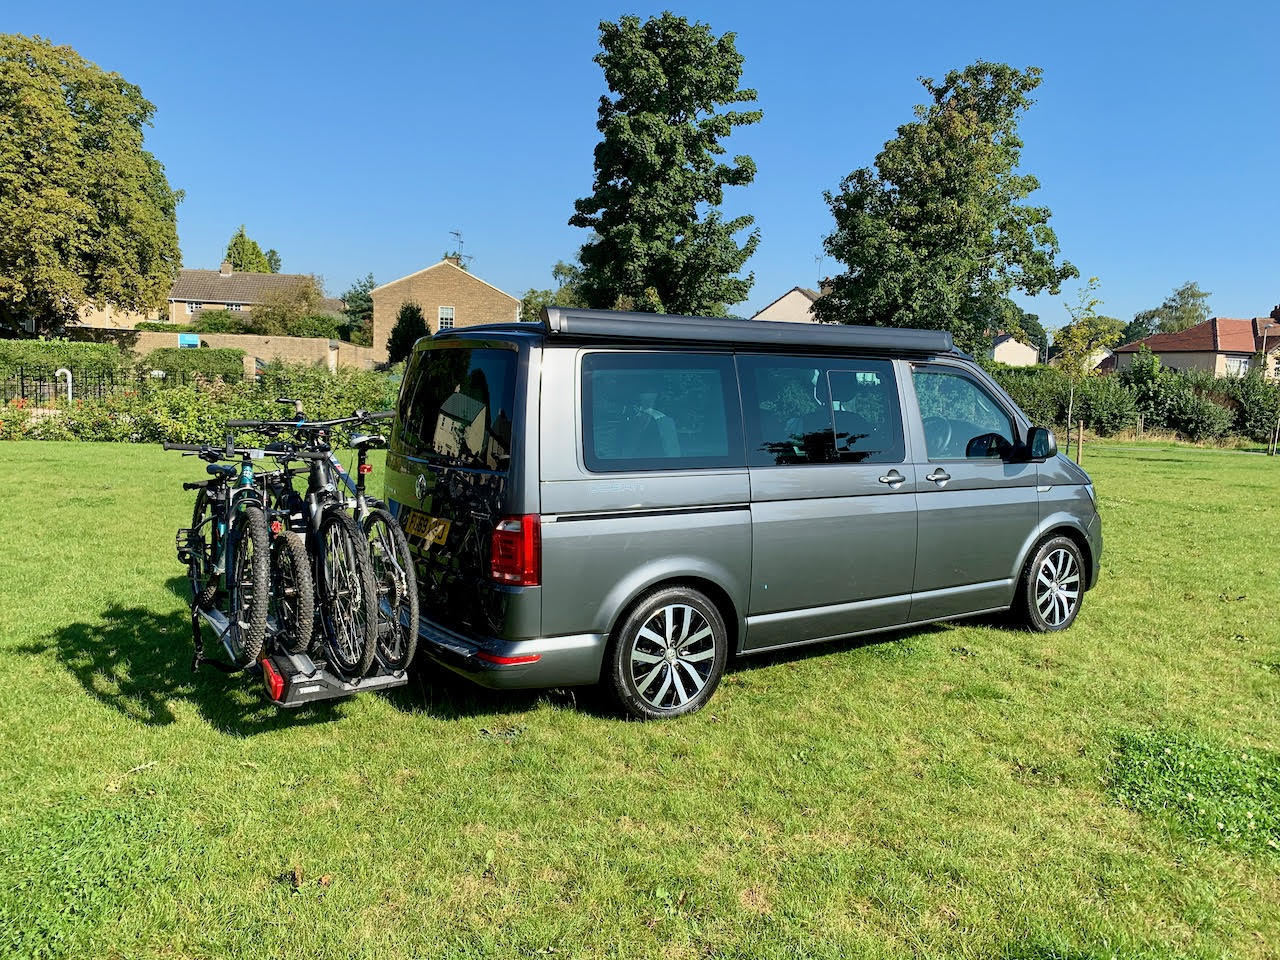 Campervan For Hire In Boston Spa From 110 00 Nearly New Vw California T6 Ocean 4motion Automatic Dsg Campervan Camplify